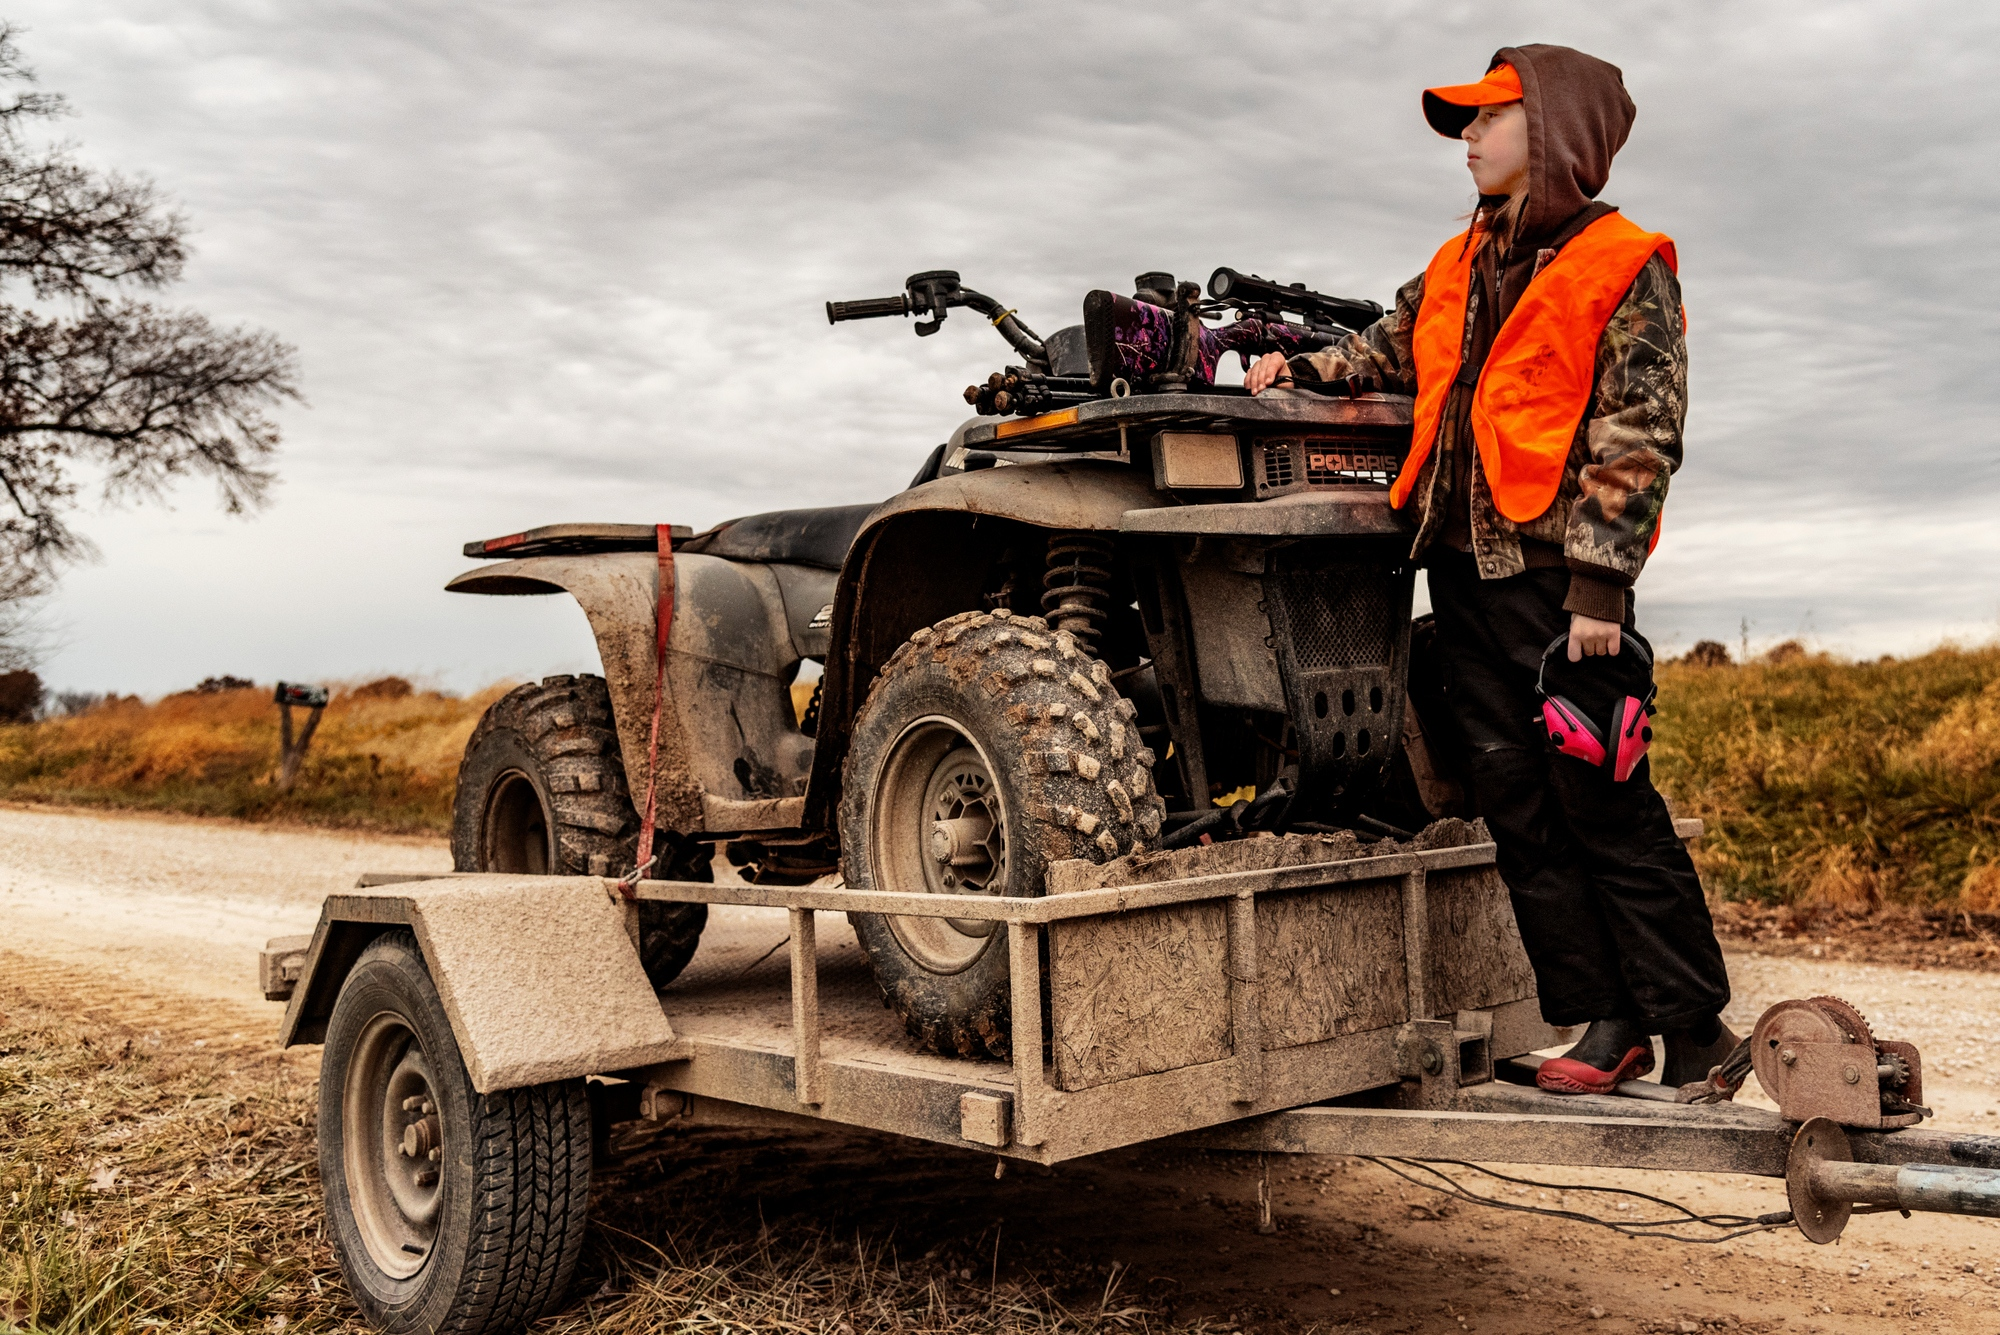 Callie Jennings, 11, waits with her gun resting on the hood of the family four-wheeler for her dad, Michael Jennings, to go check trail cameras on November 23, 2018 outside Centralia, Mo.